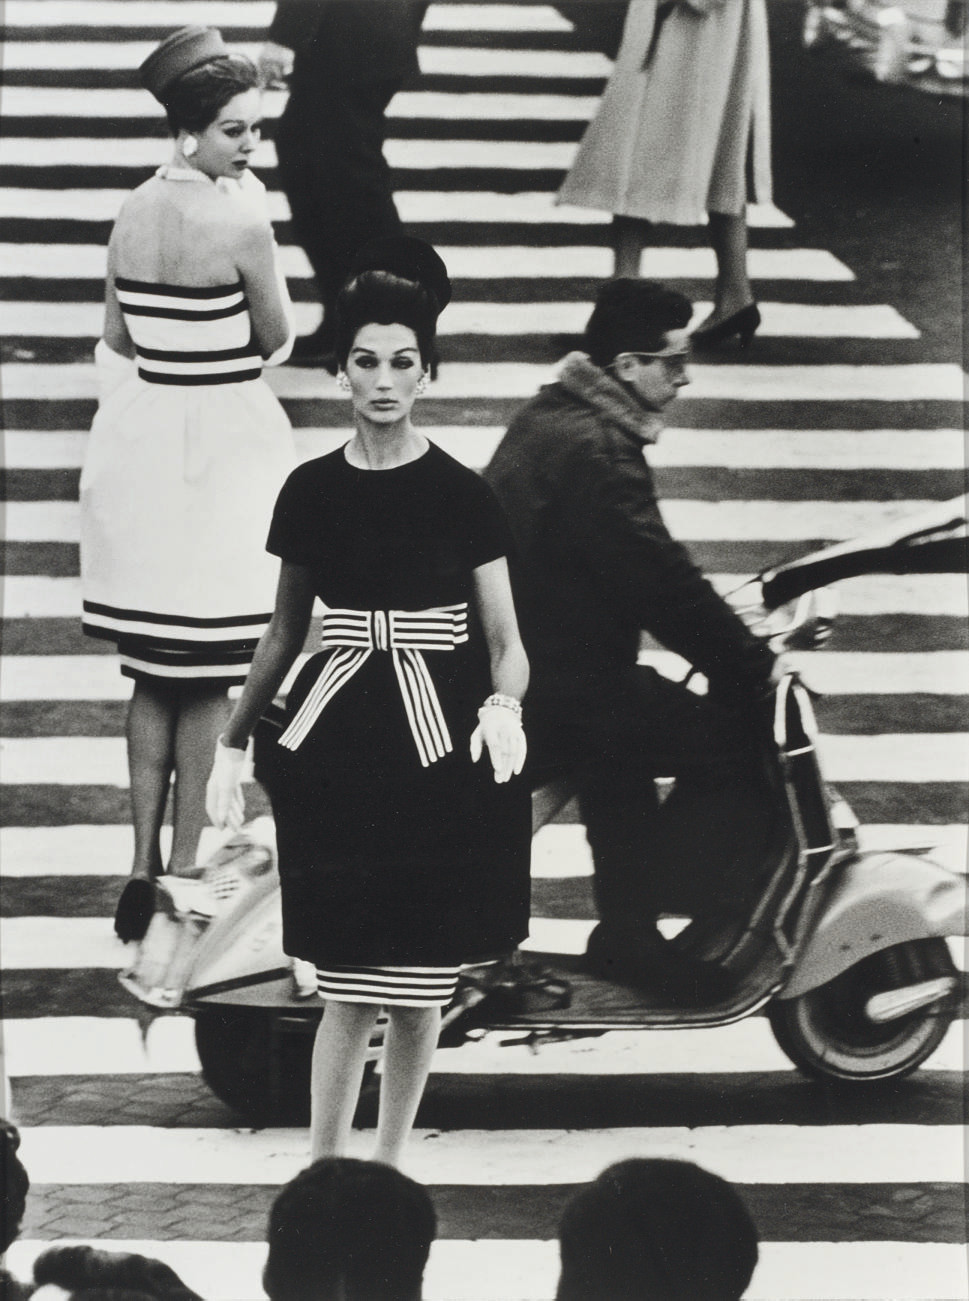 WILLIAM KLEIN (b.1926)